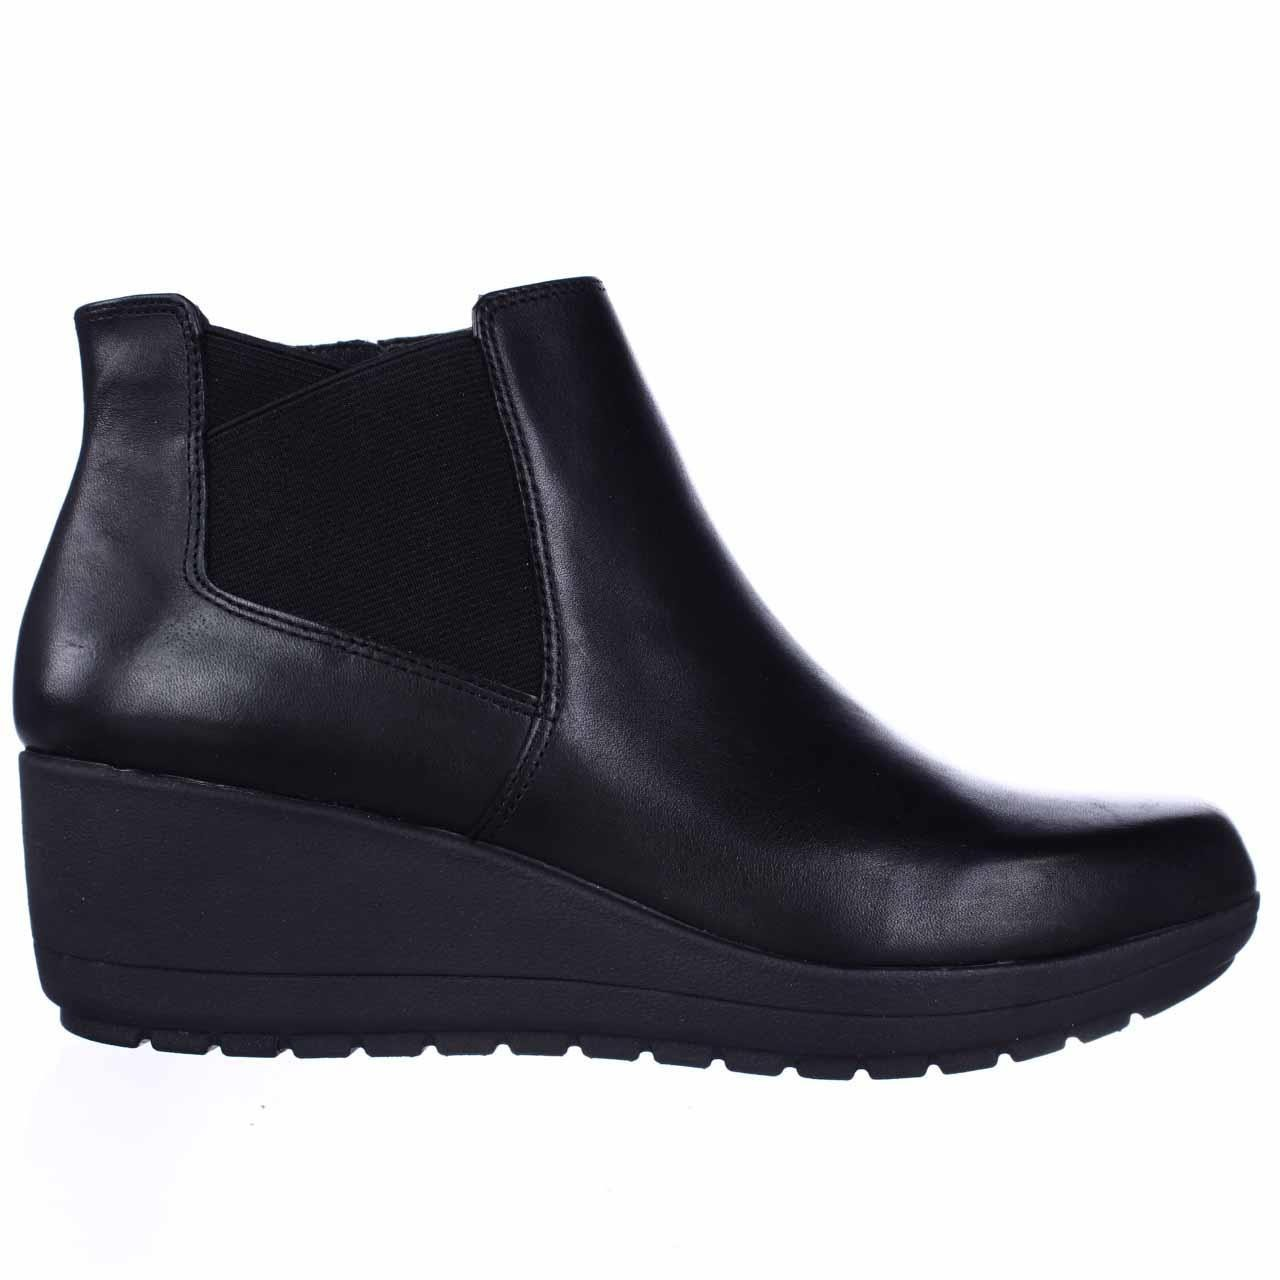 Womens Corby Leather Closed Toe Ankle Fashion Boots